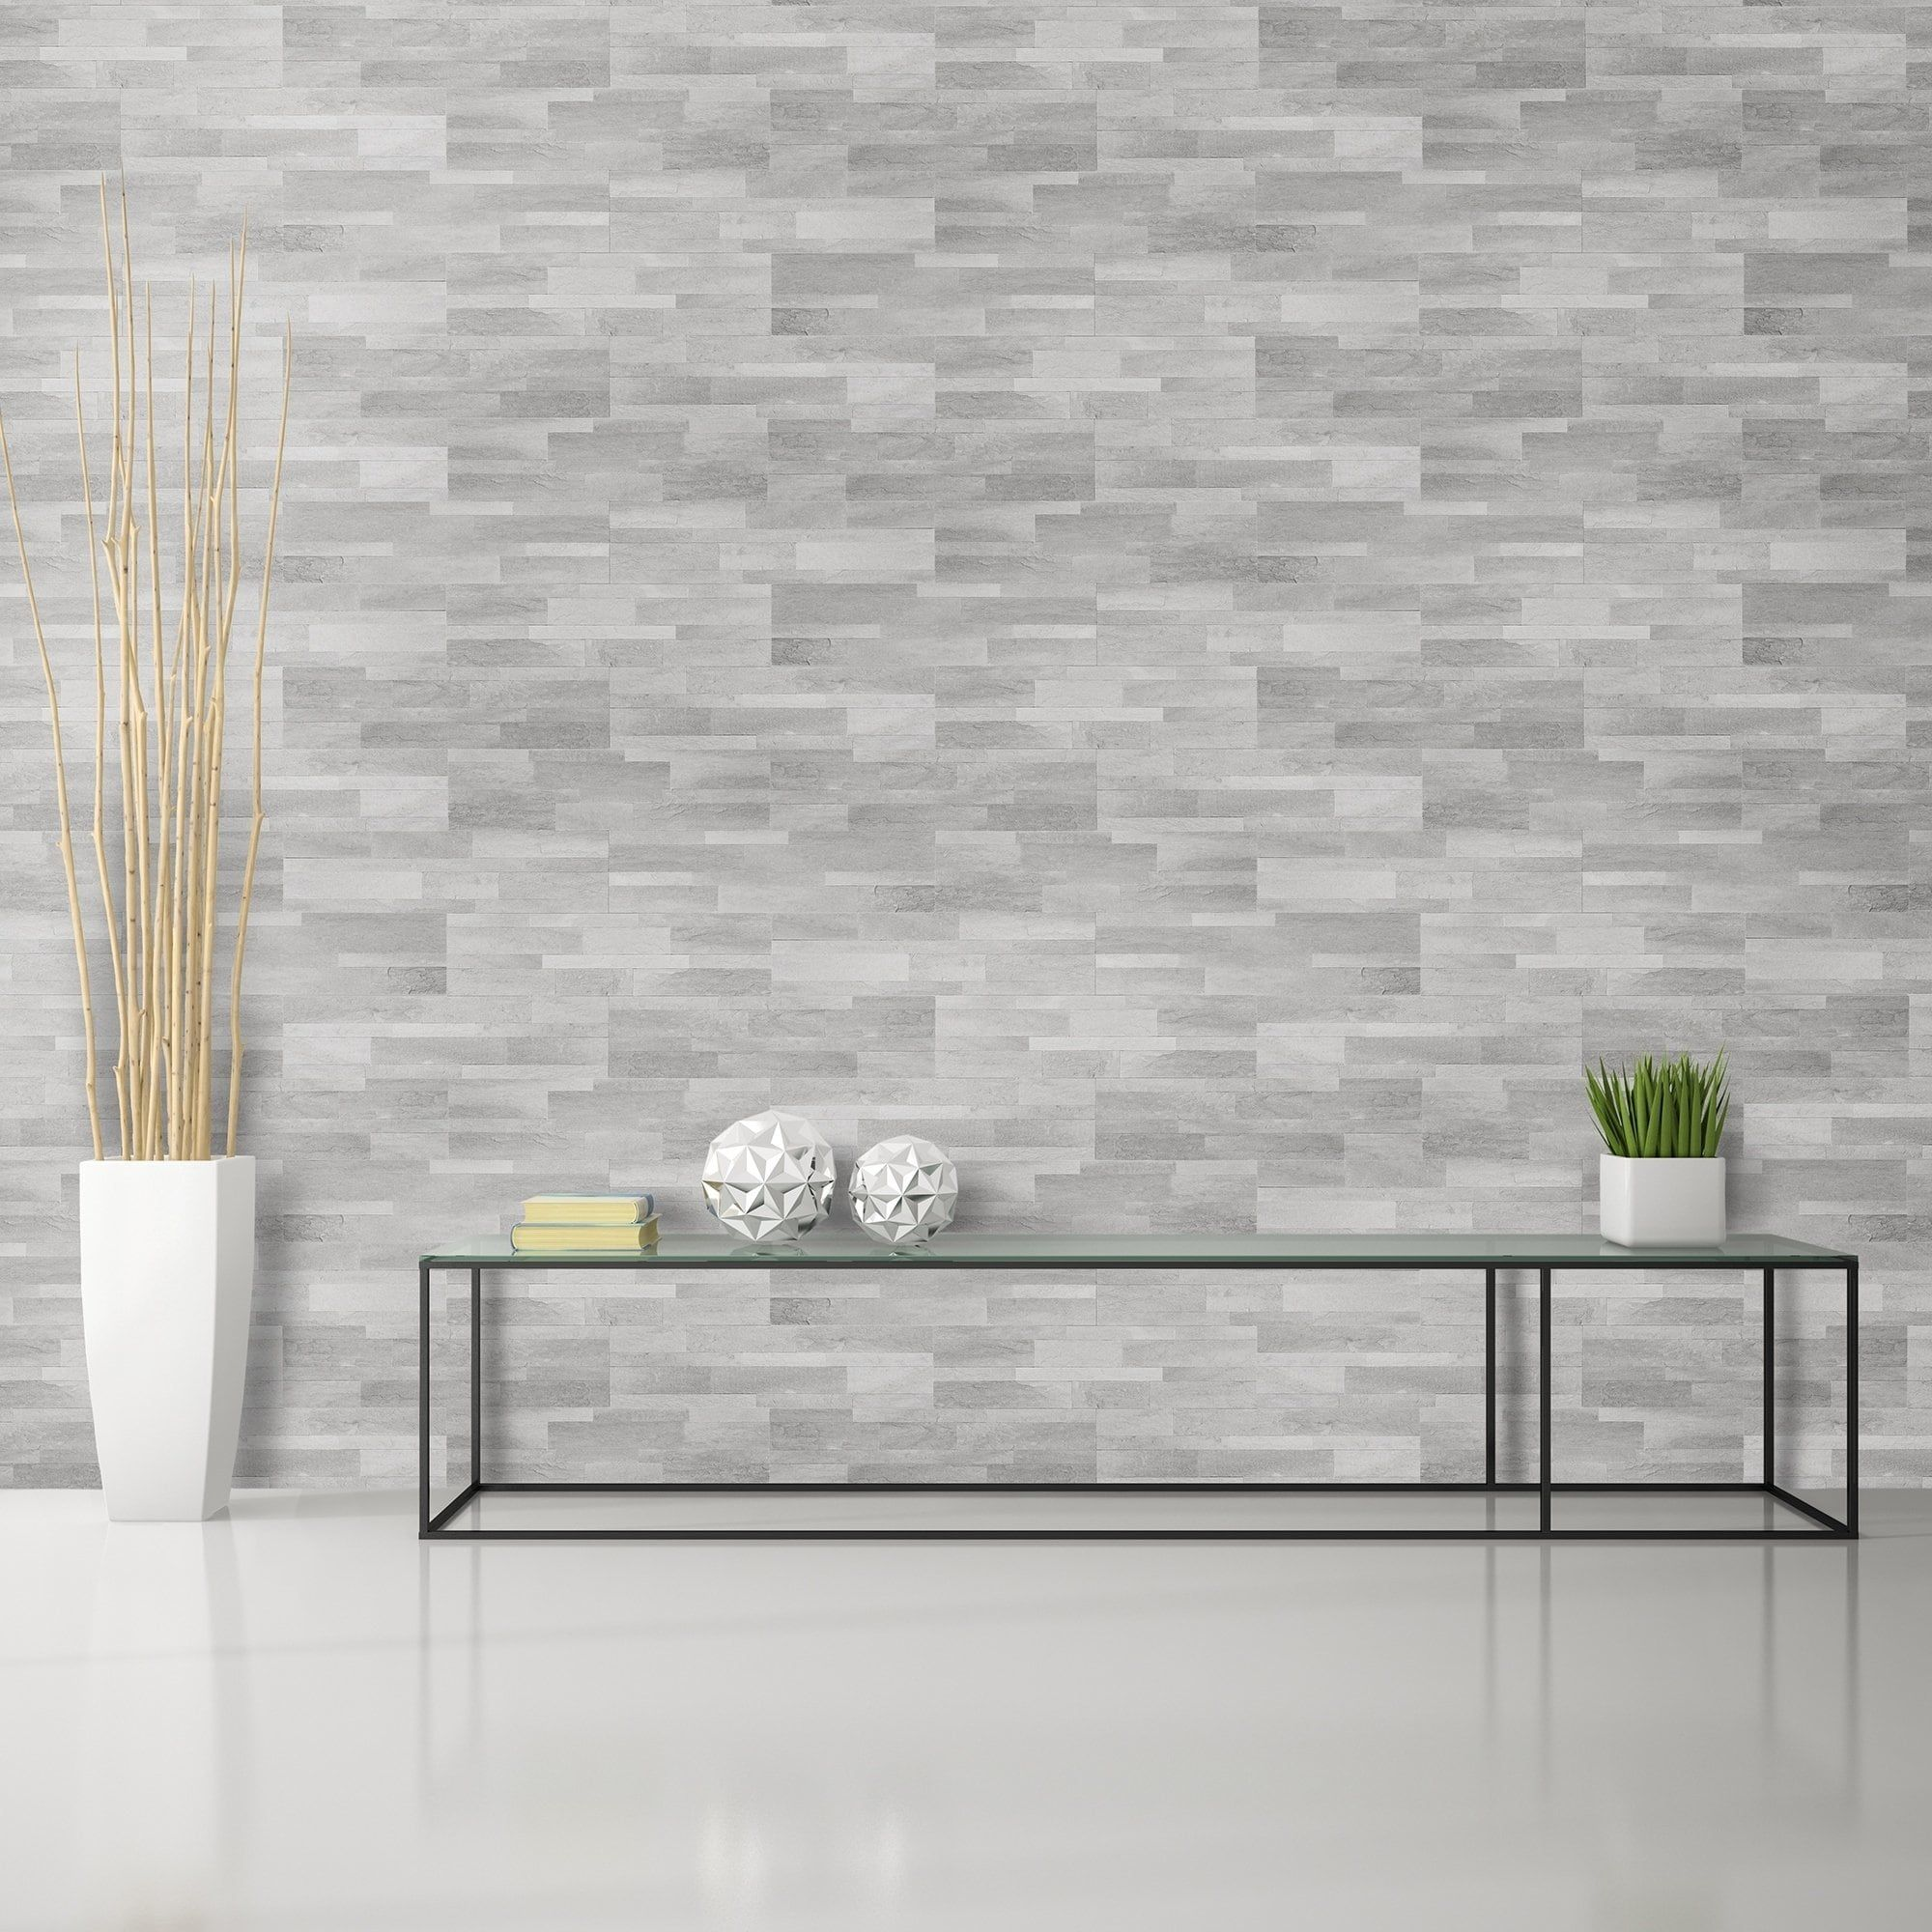 Bolder Stone 6in X 24in Self Adhesive Stone Wall Tile